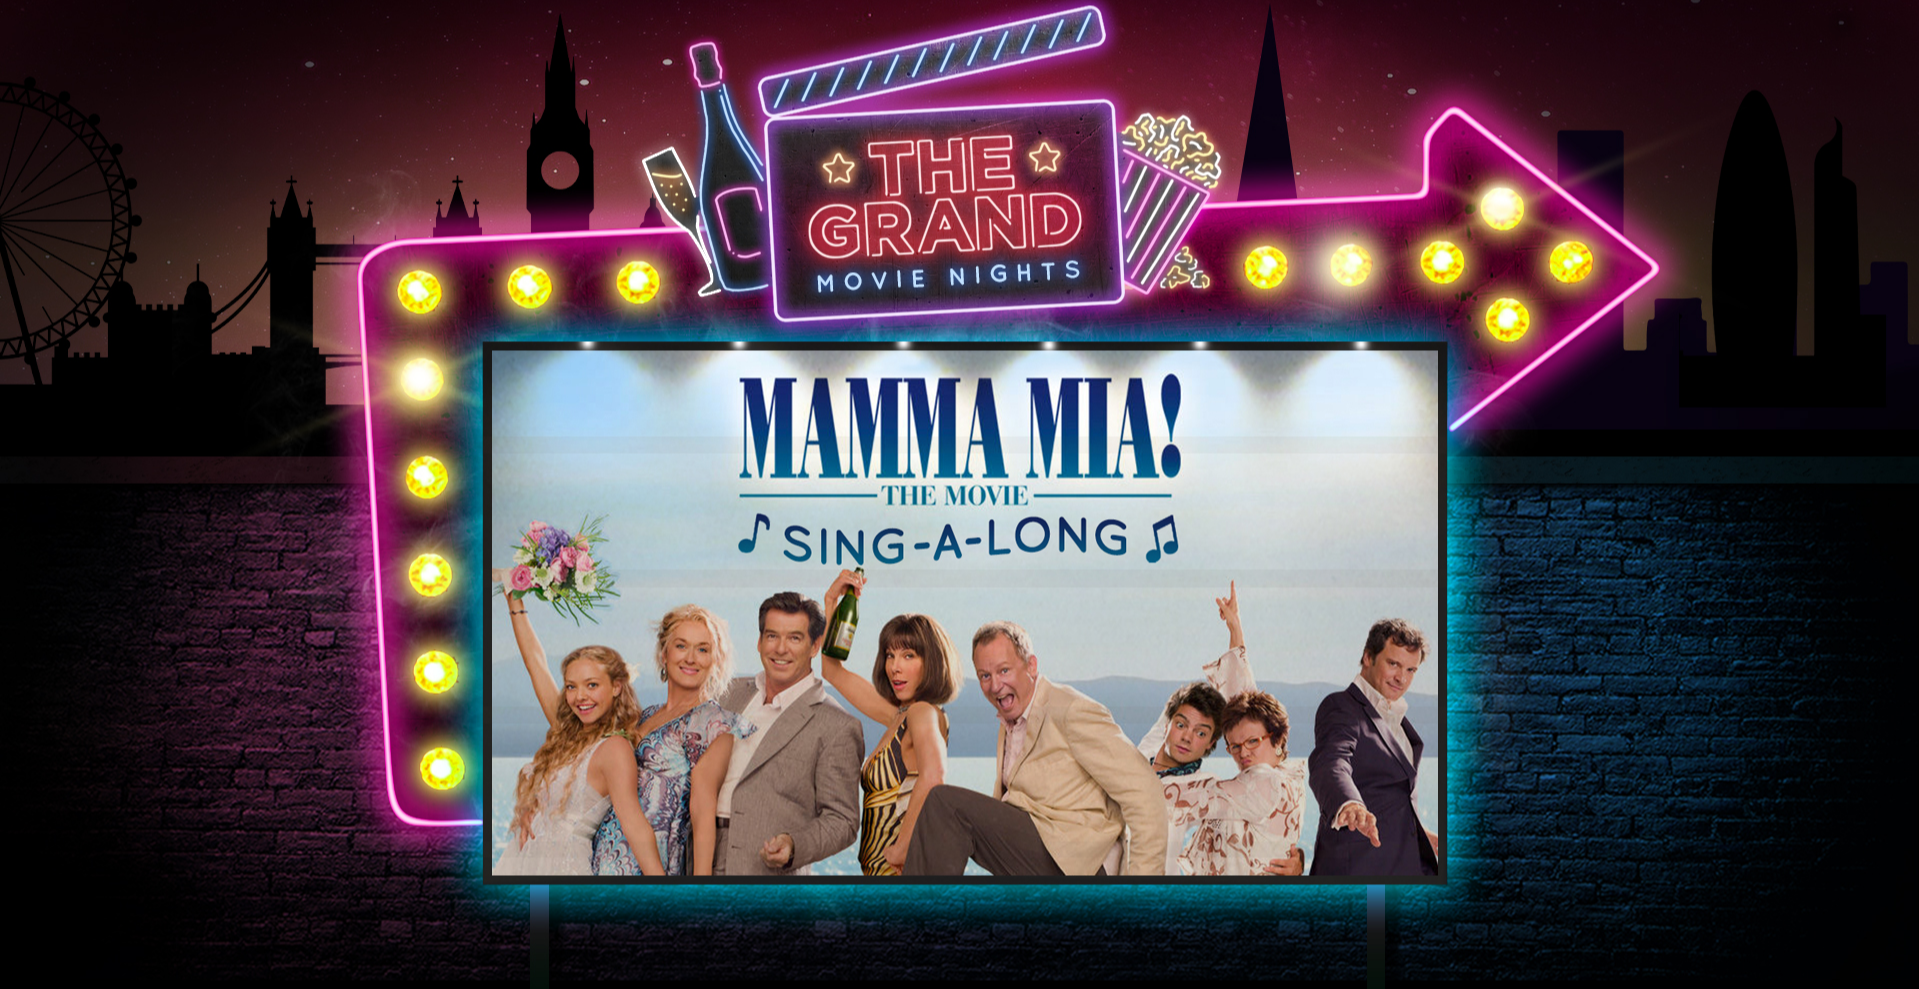 Mamma Mia Sing-A-Long Movie Night